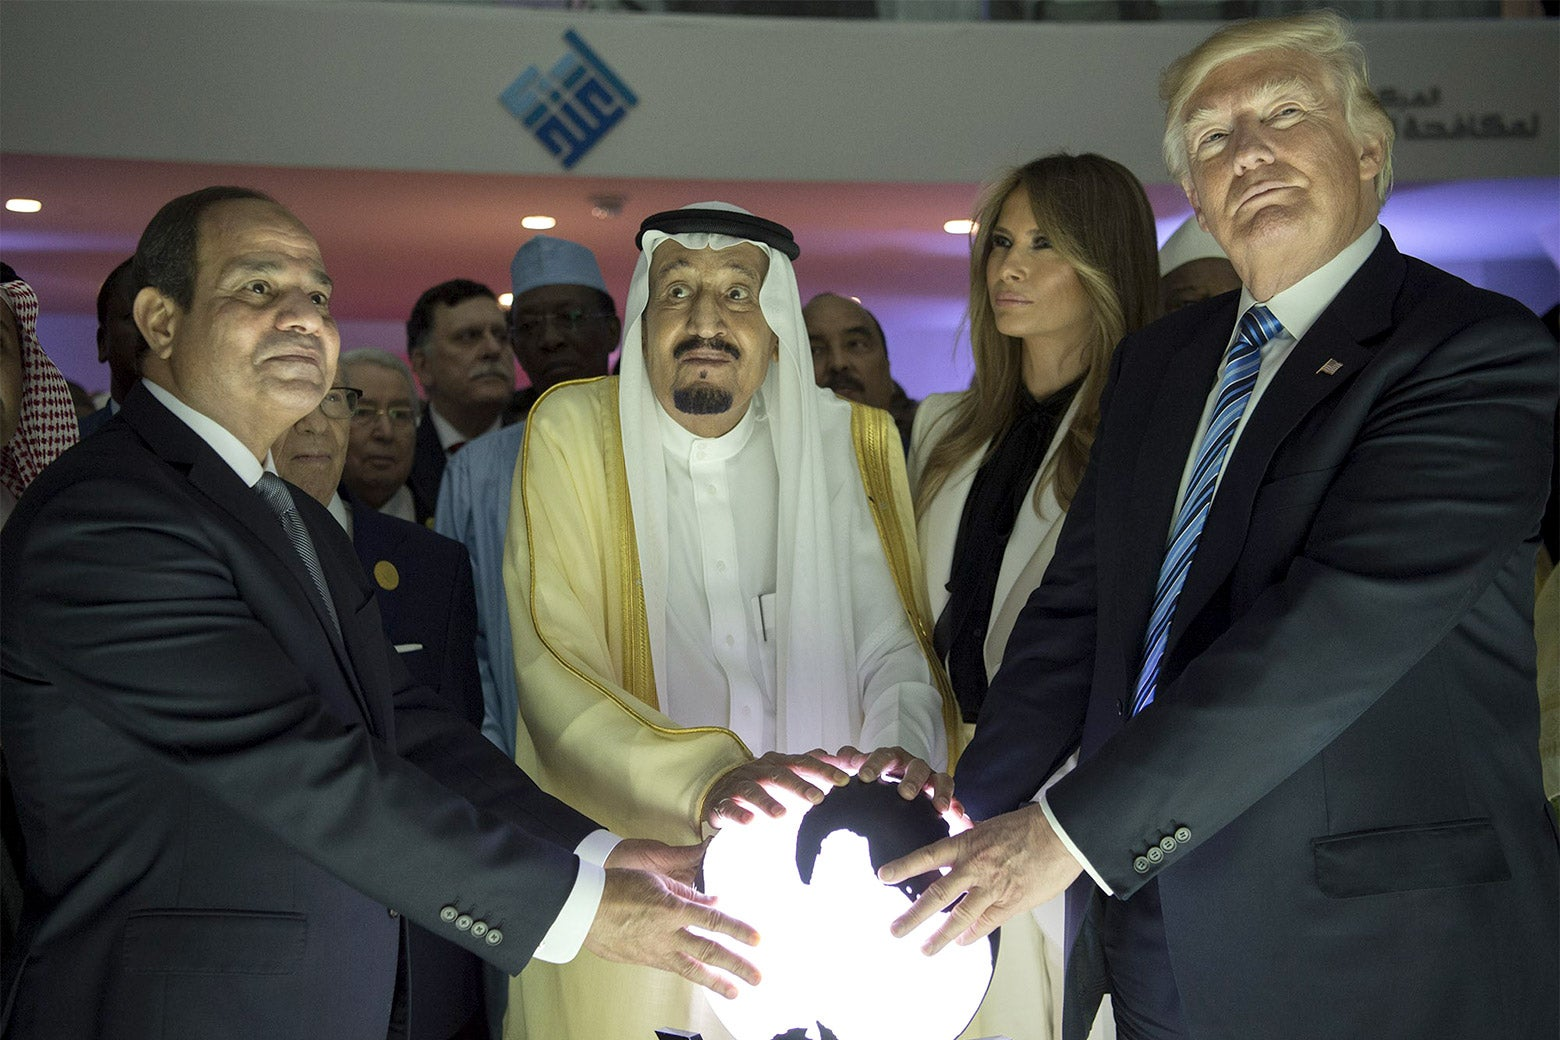 Trump, Sisi, and King Salman place their hands on an orb.